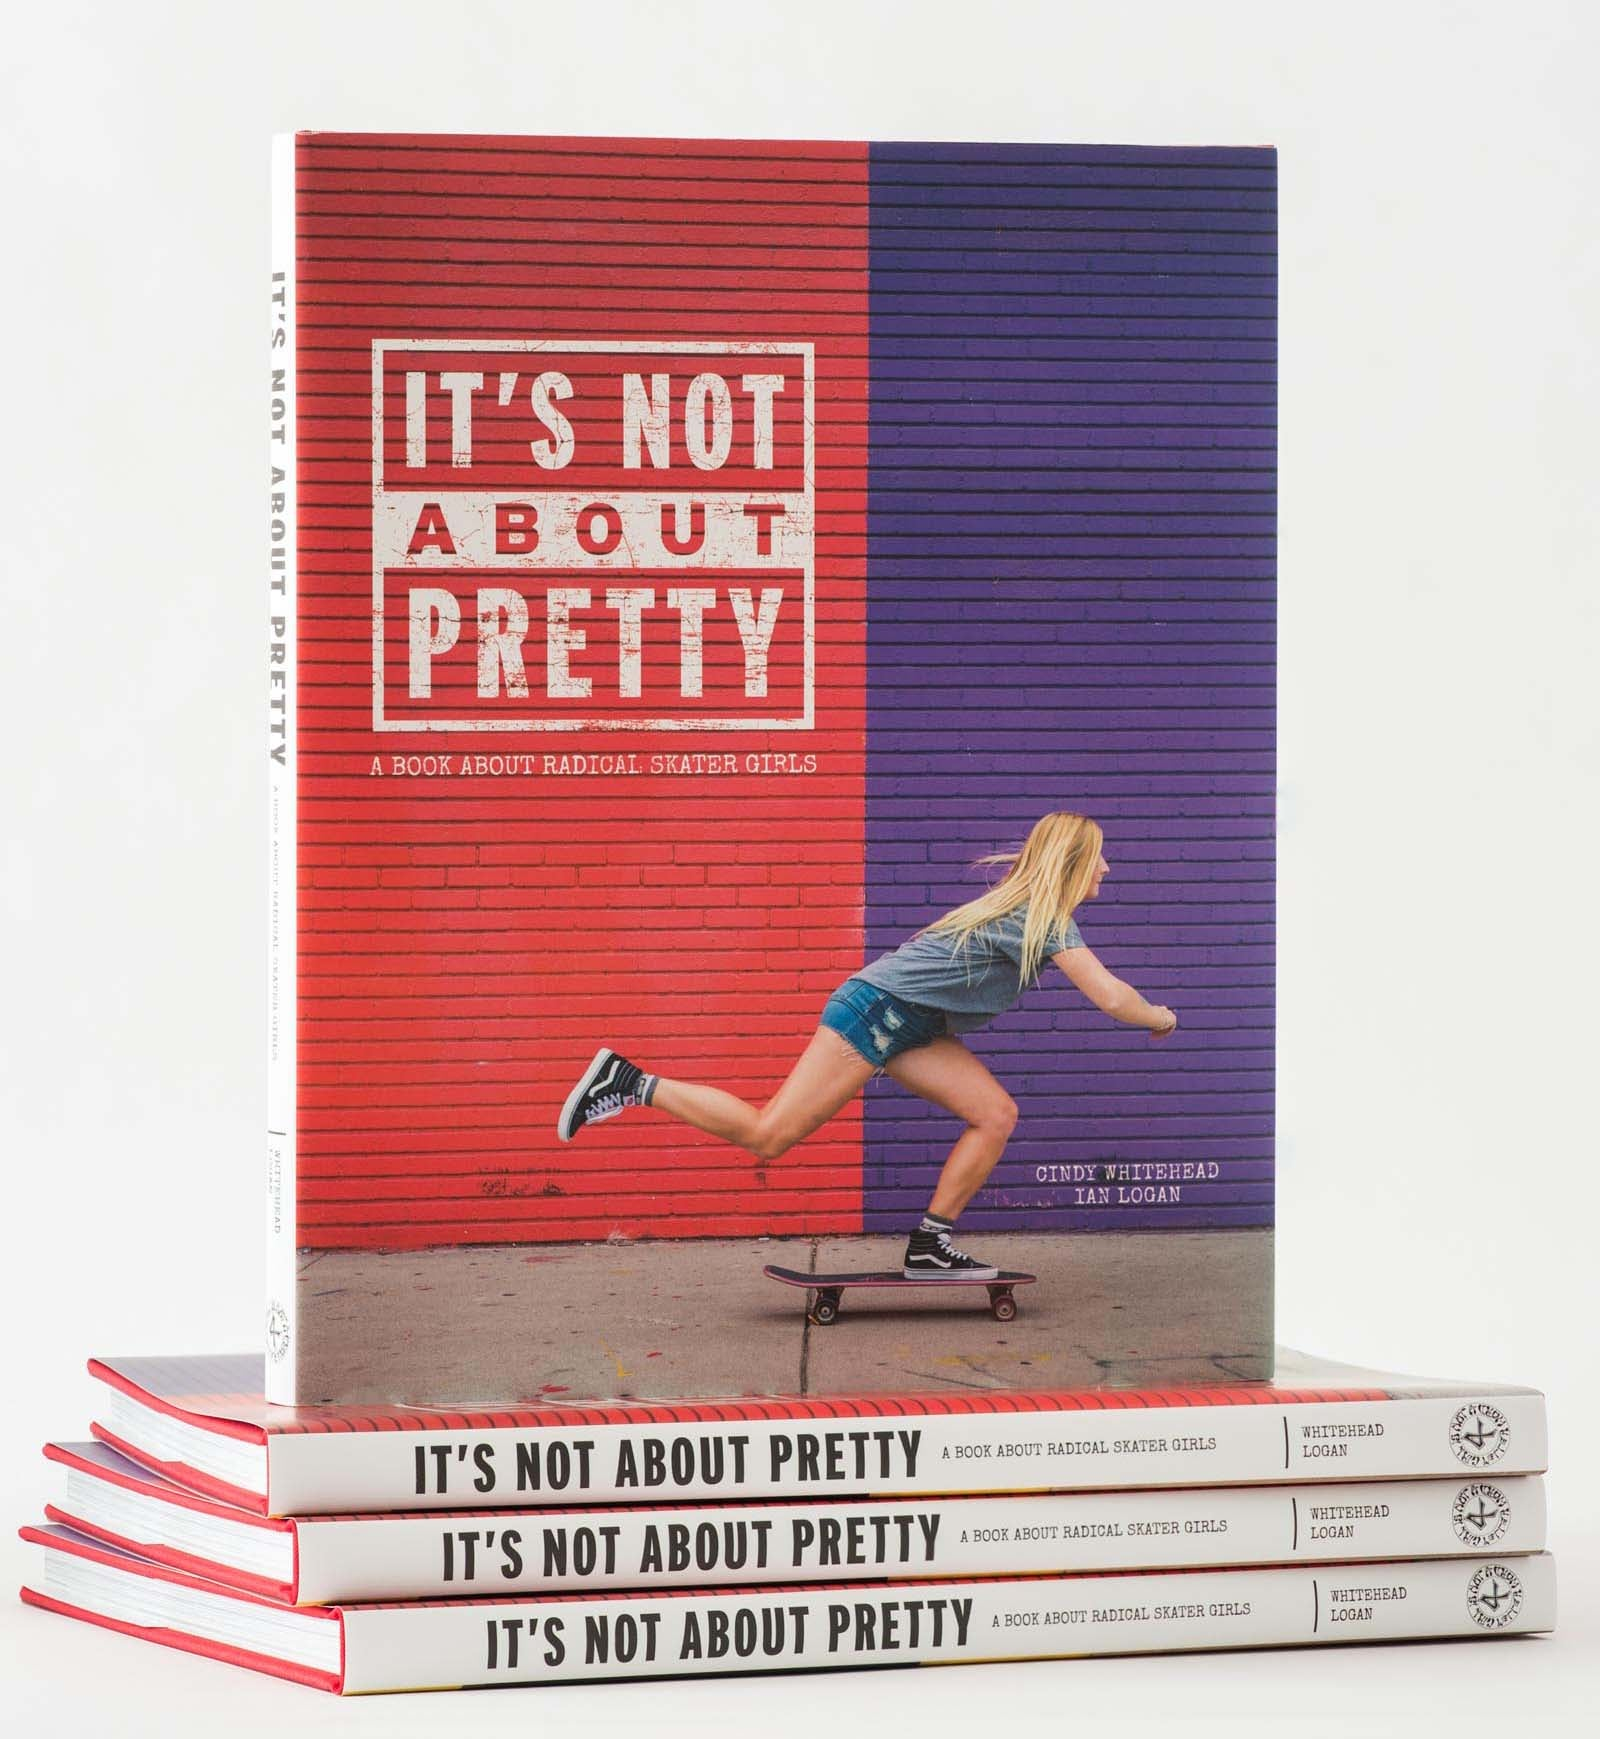 Pictures Of Pretty Book Covers ~ It s not about pretty a book about radical skater girls girl is